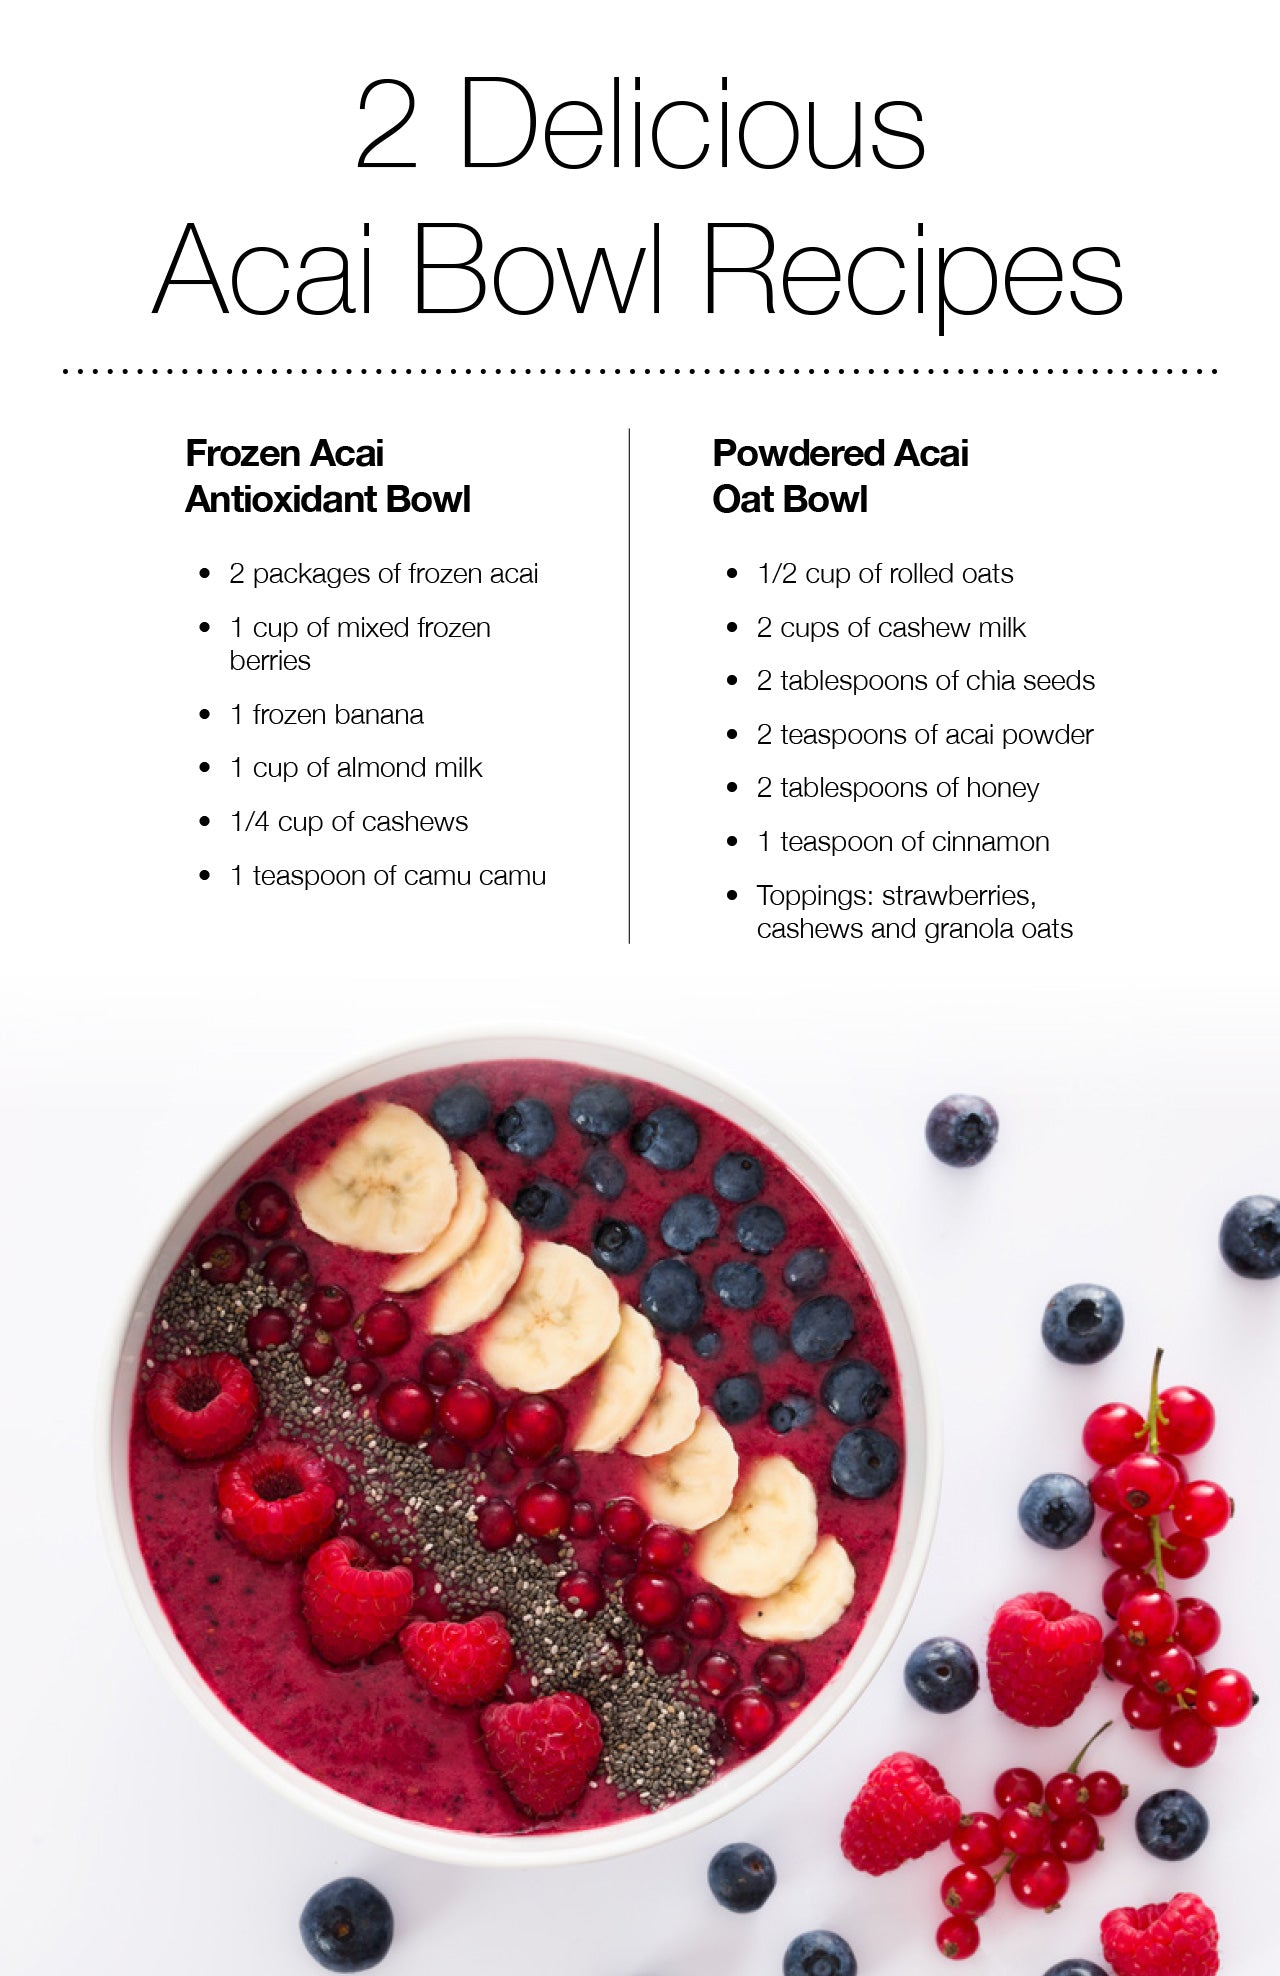 2 Delicious Acai Bowl Recipes